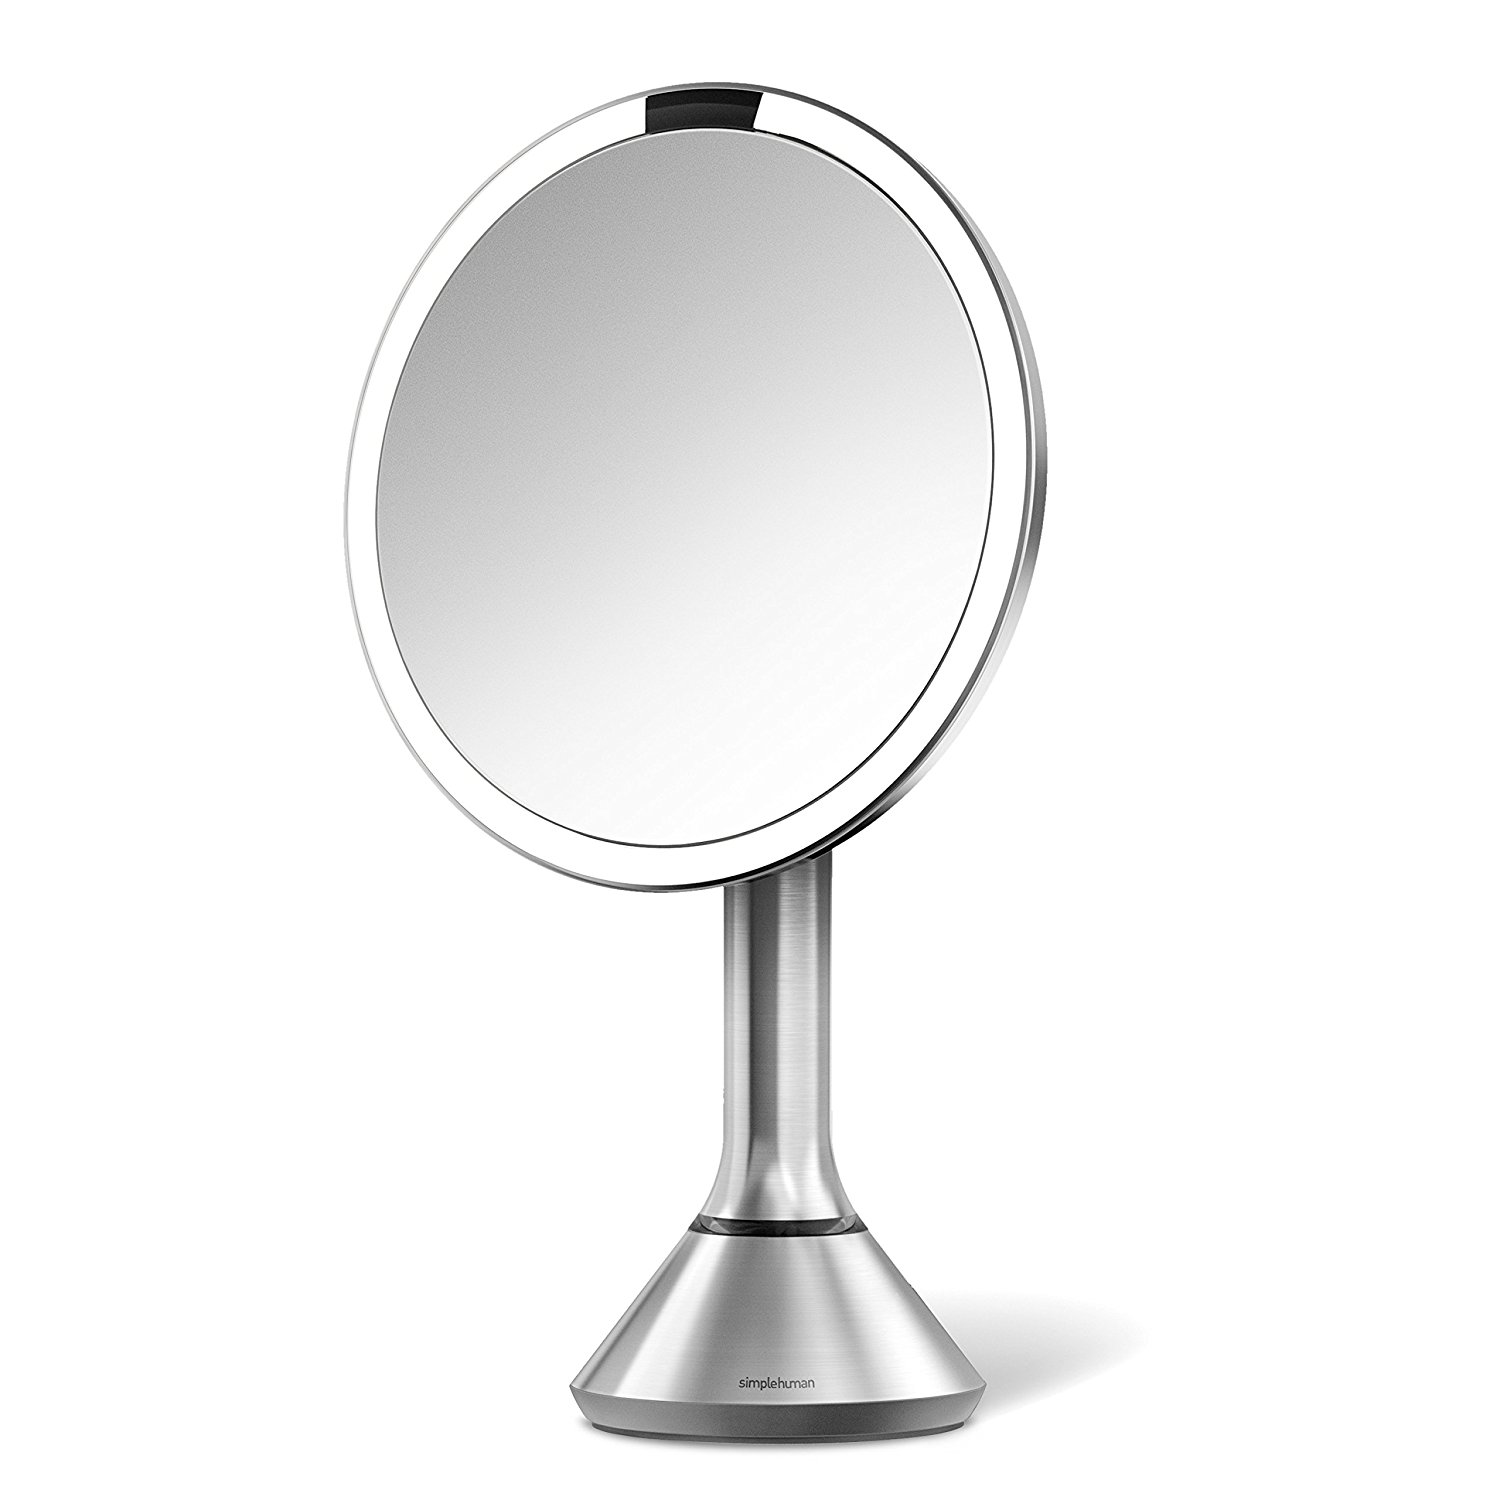 Makeup Vanity Set with Lighted Mirror | Best Lighted Makeup Mirror | Magnification Mirror